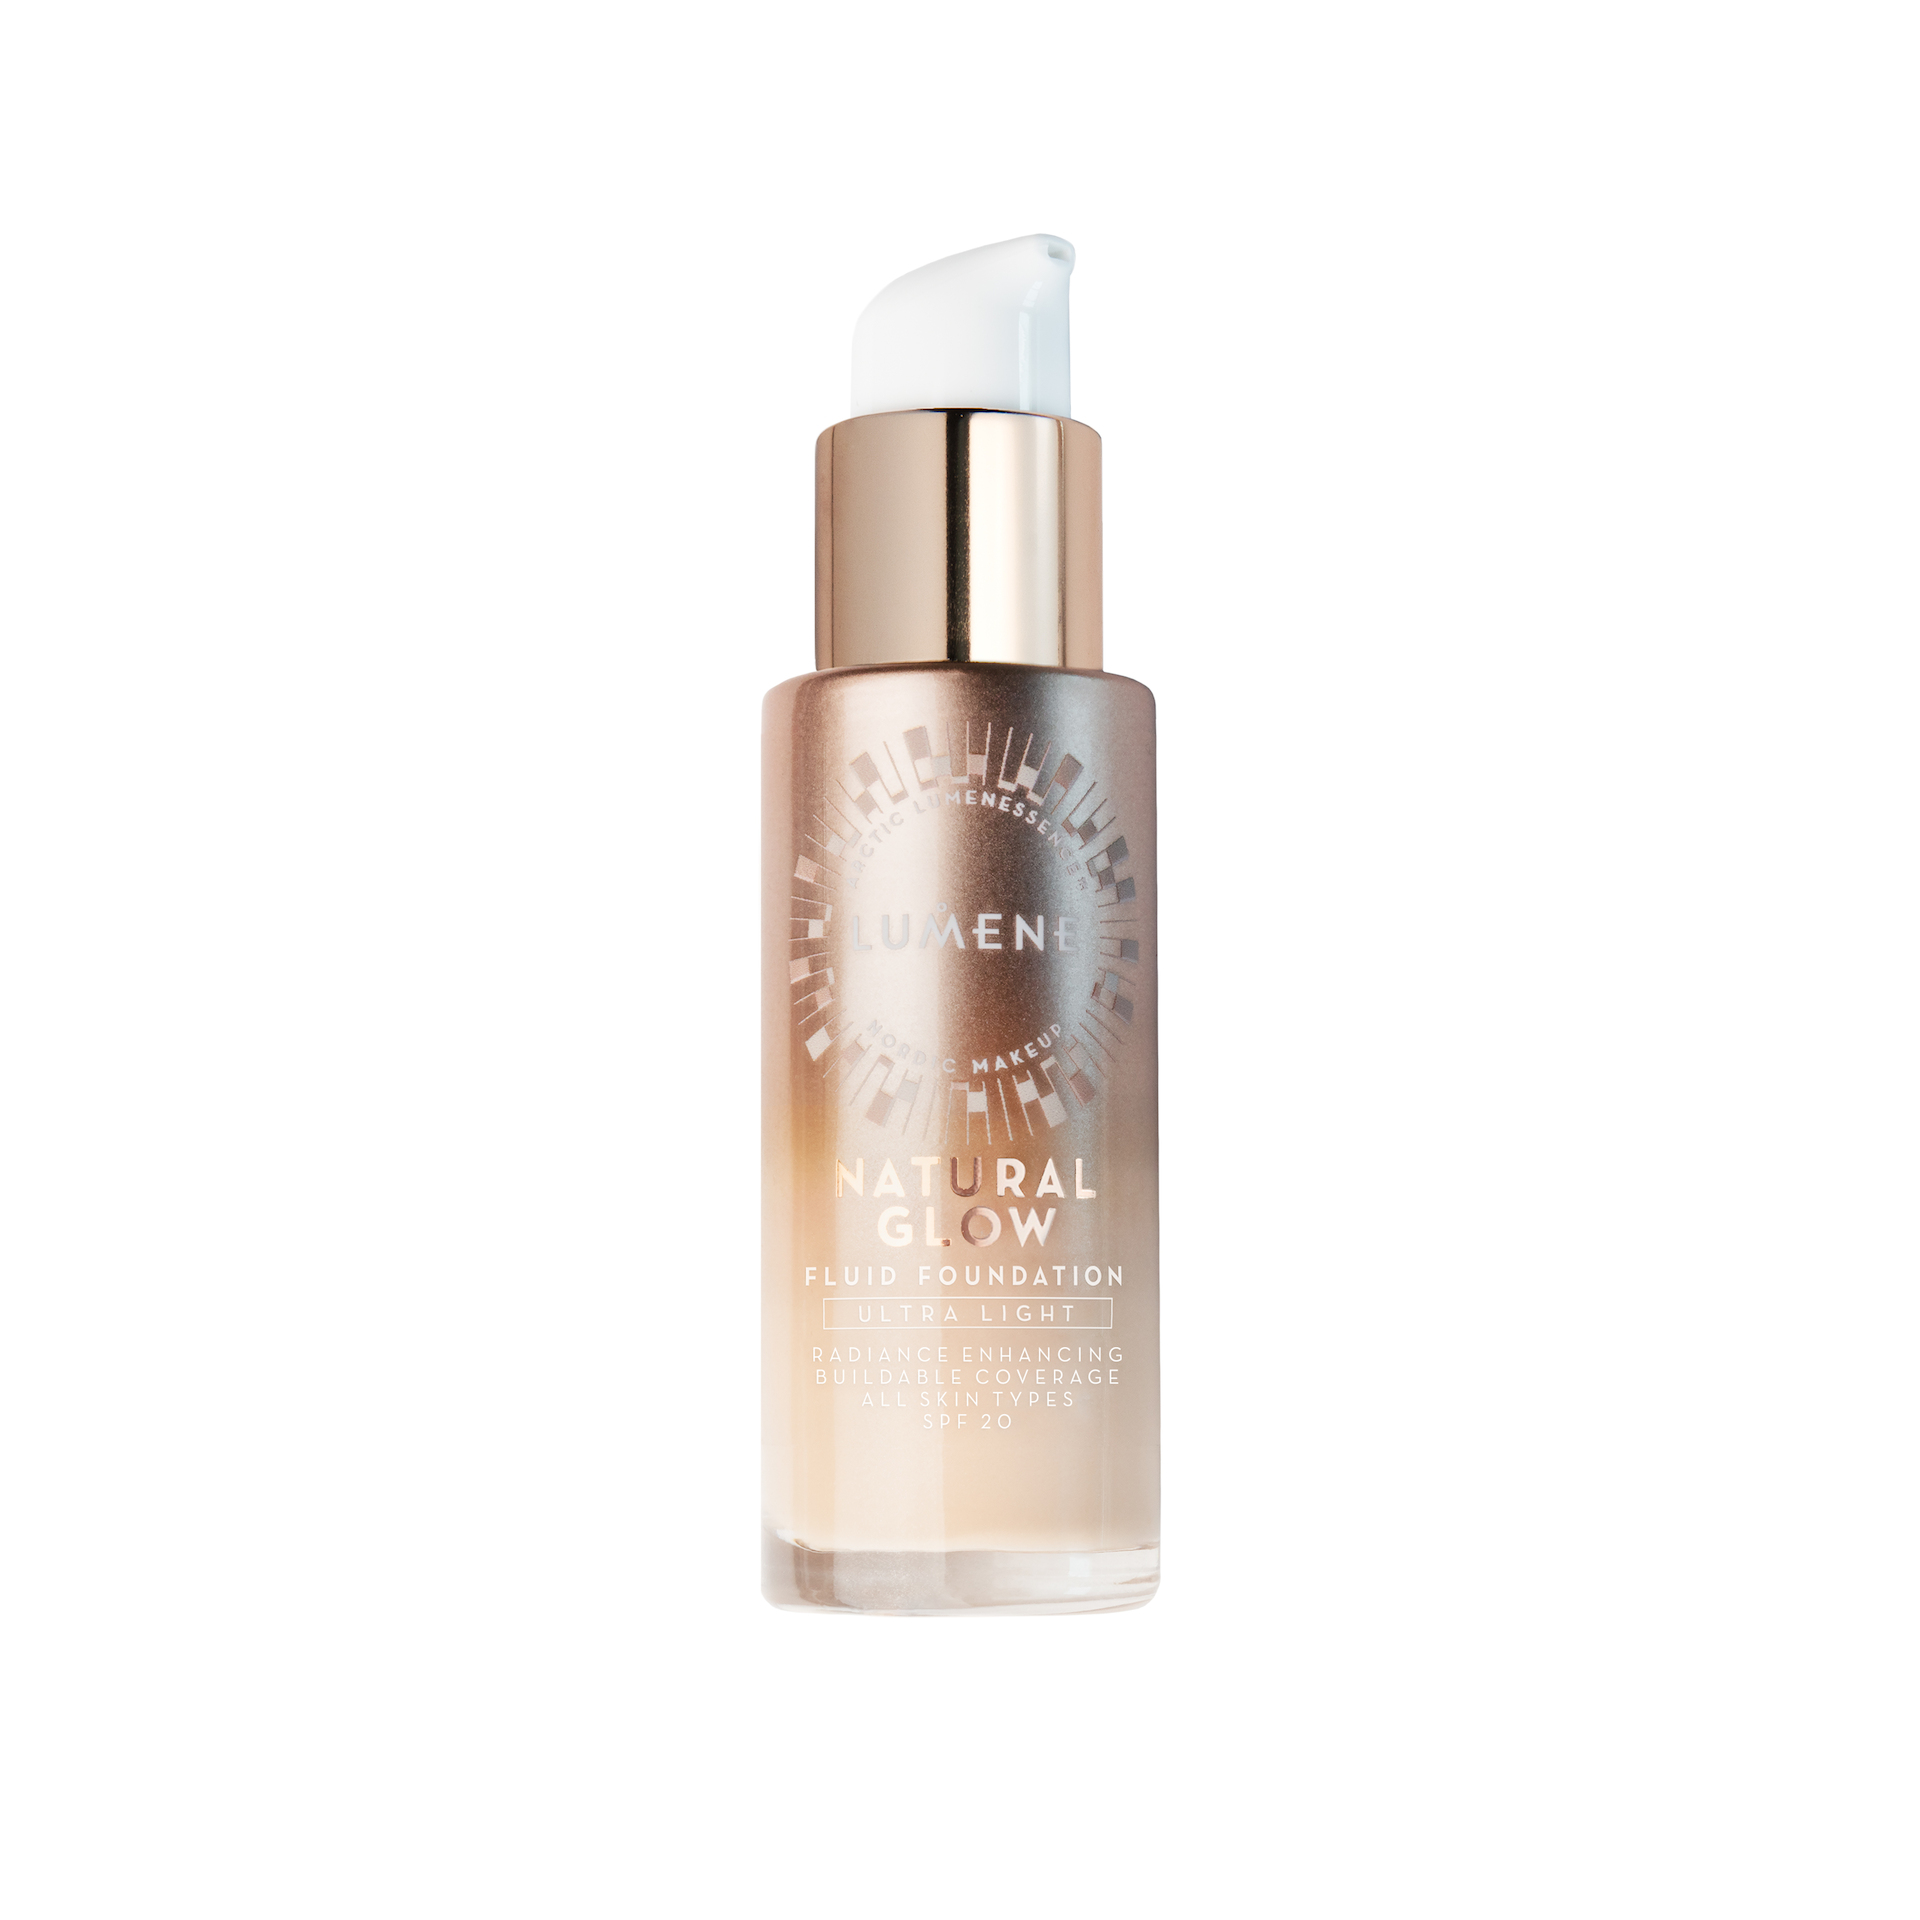 Lumene Natural Glow Fluid Foundation – Ultra Light